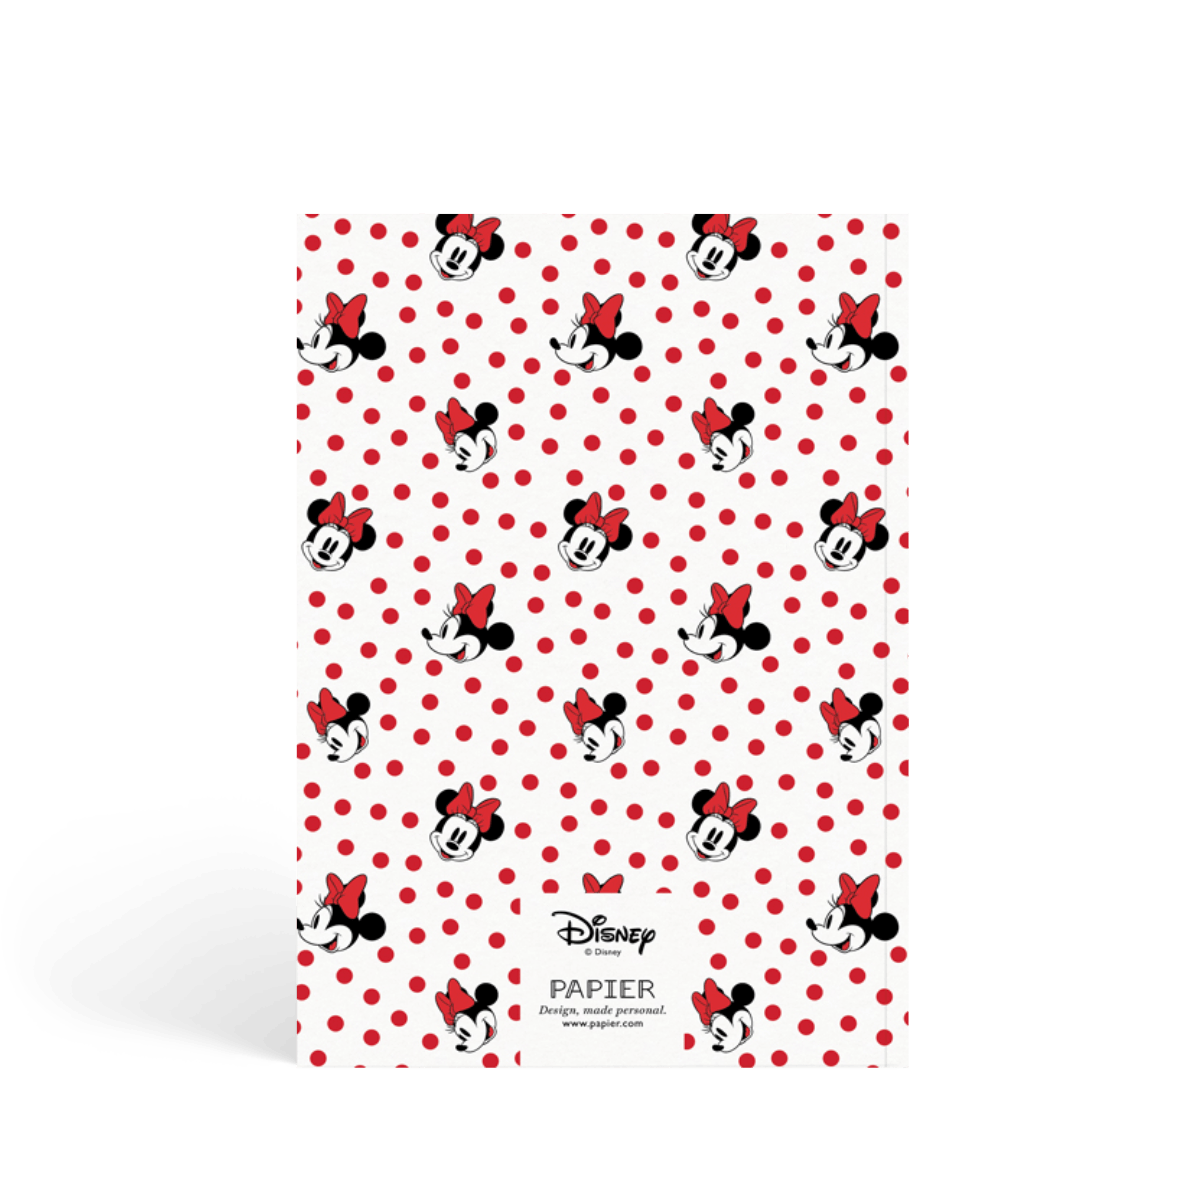 Https%3a%2f%2fwww.papier.com%2fproduct image%2f56028%2f5%2fminnie mouse 13461 rueckseite 1542369387.png?ixlib=rb 1.1